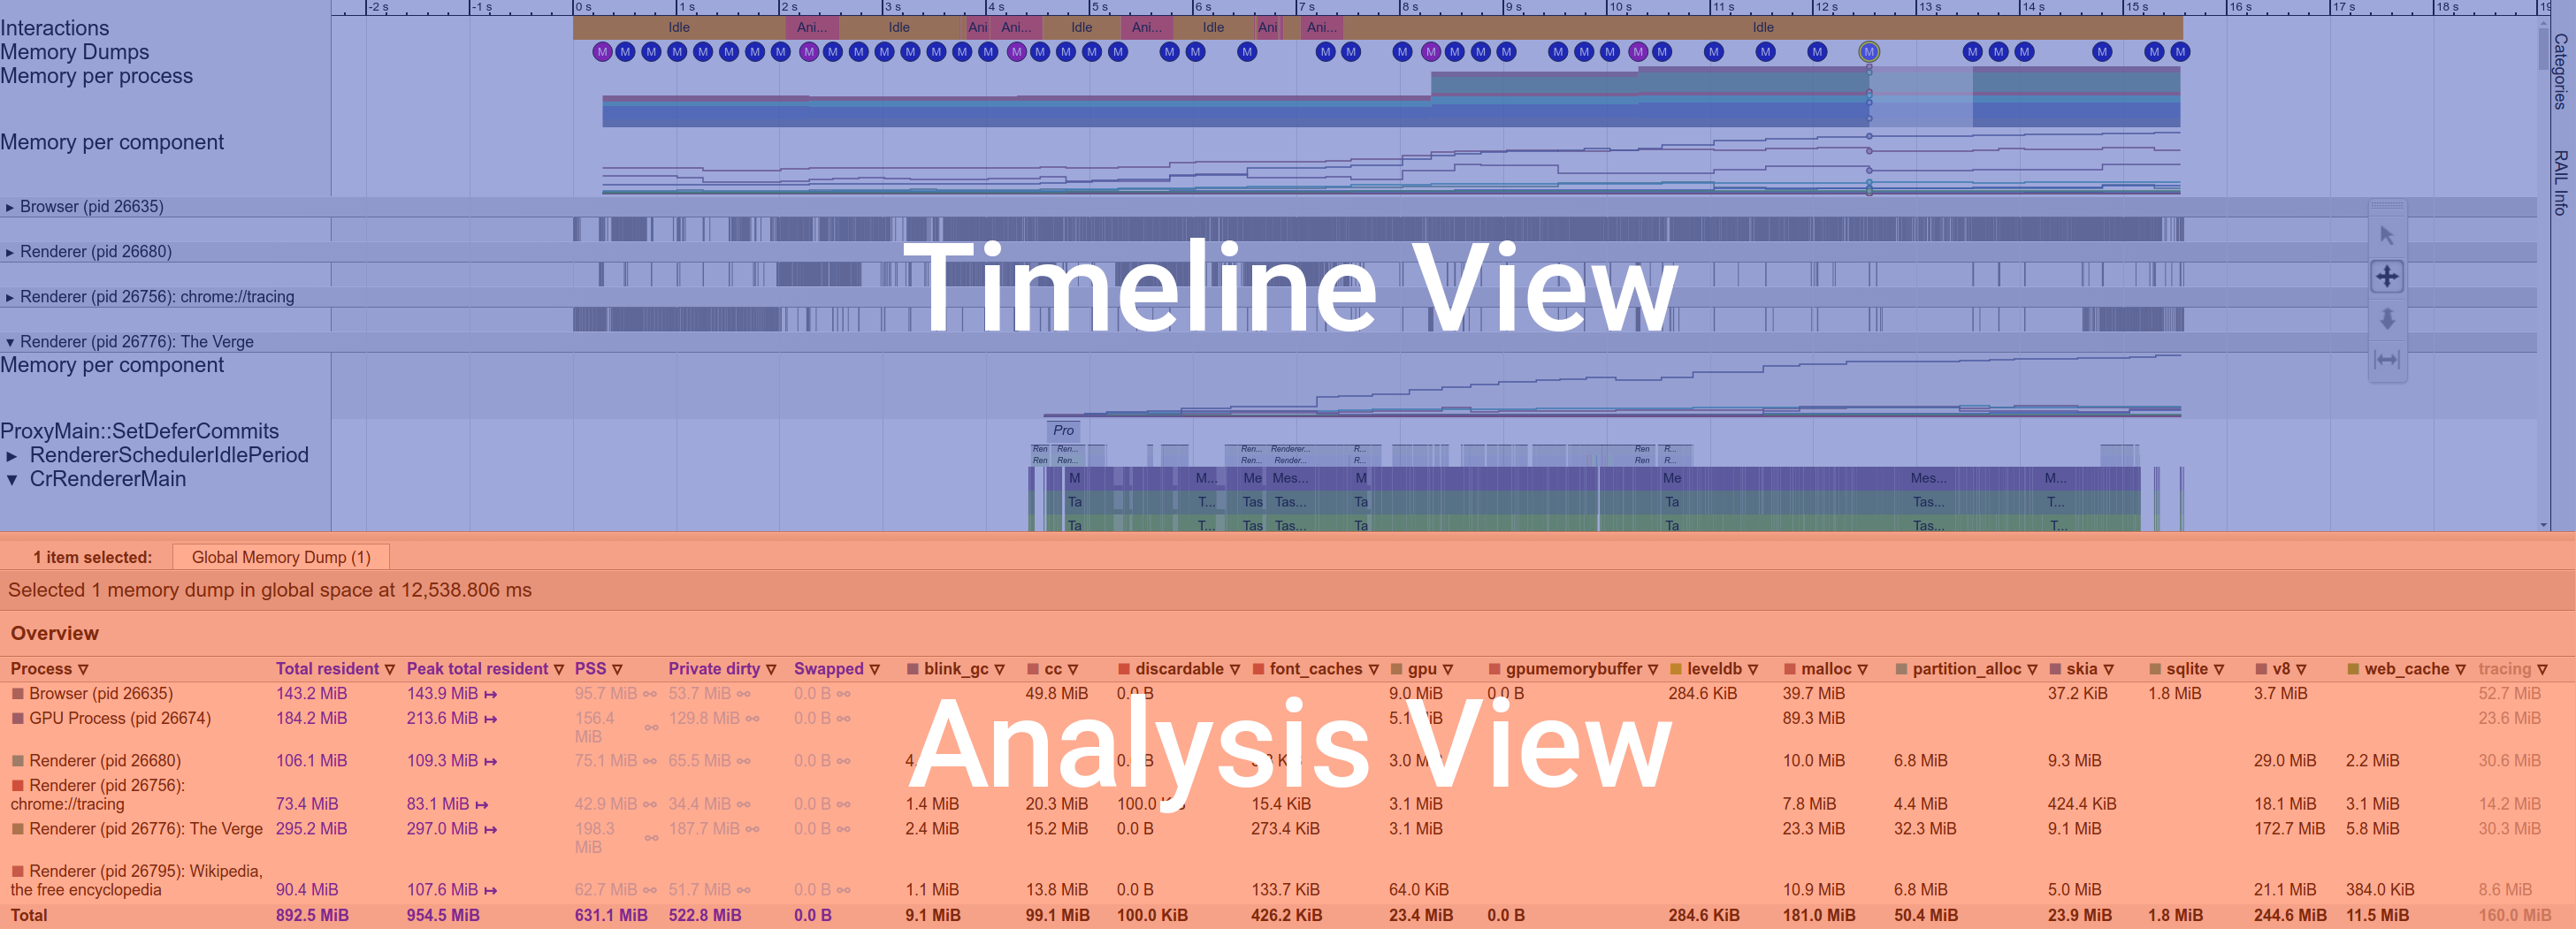 Timeline View and Analysis View